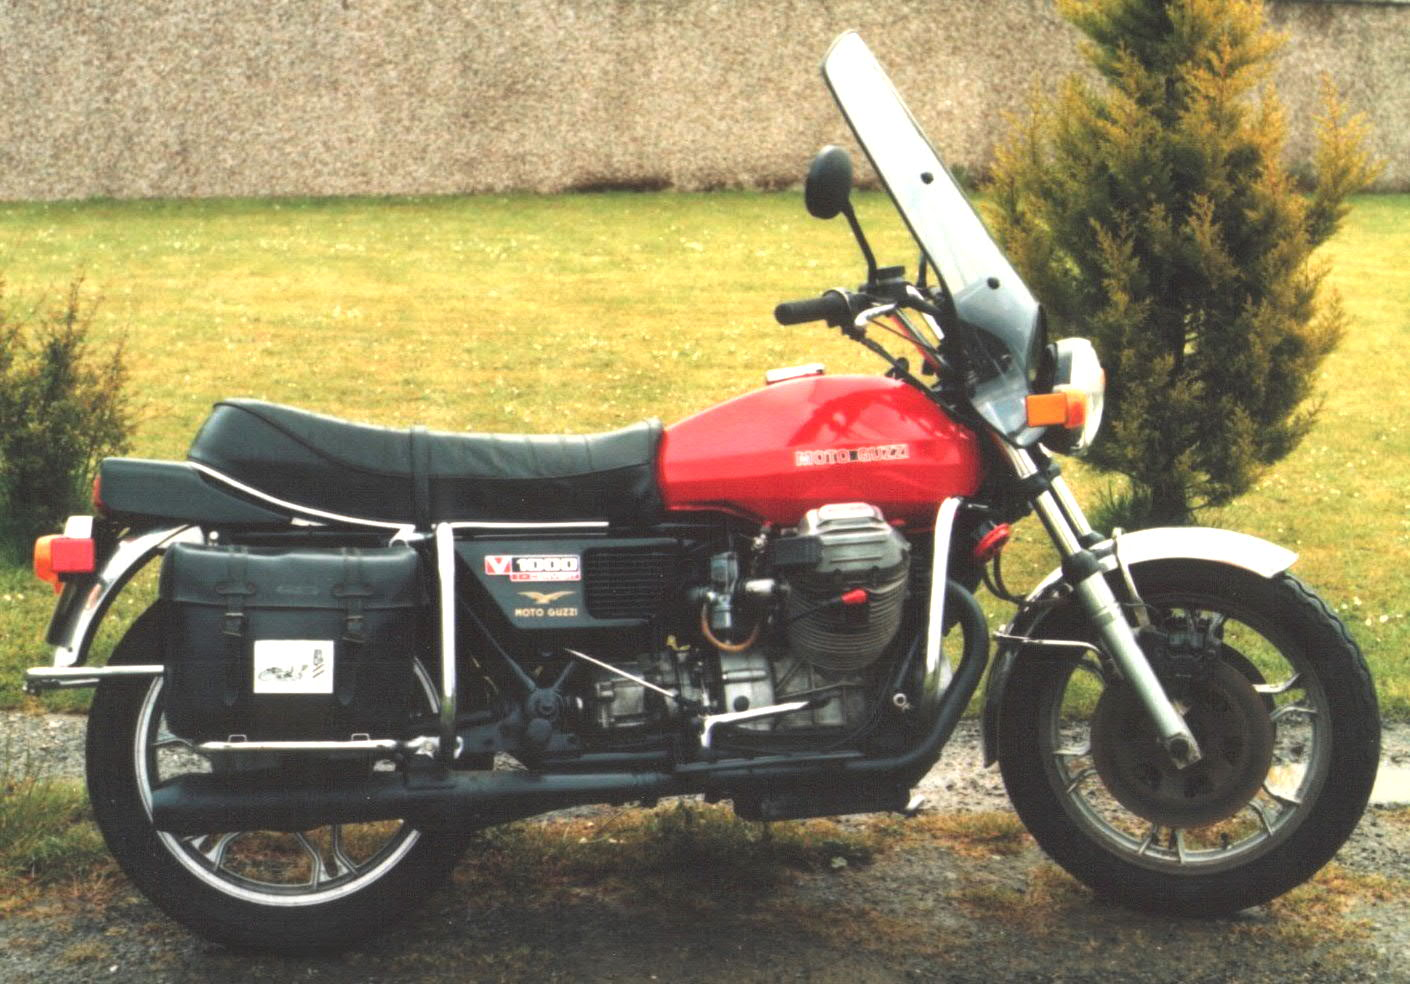 Moto guzzi 1000 photo - 2